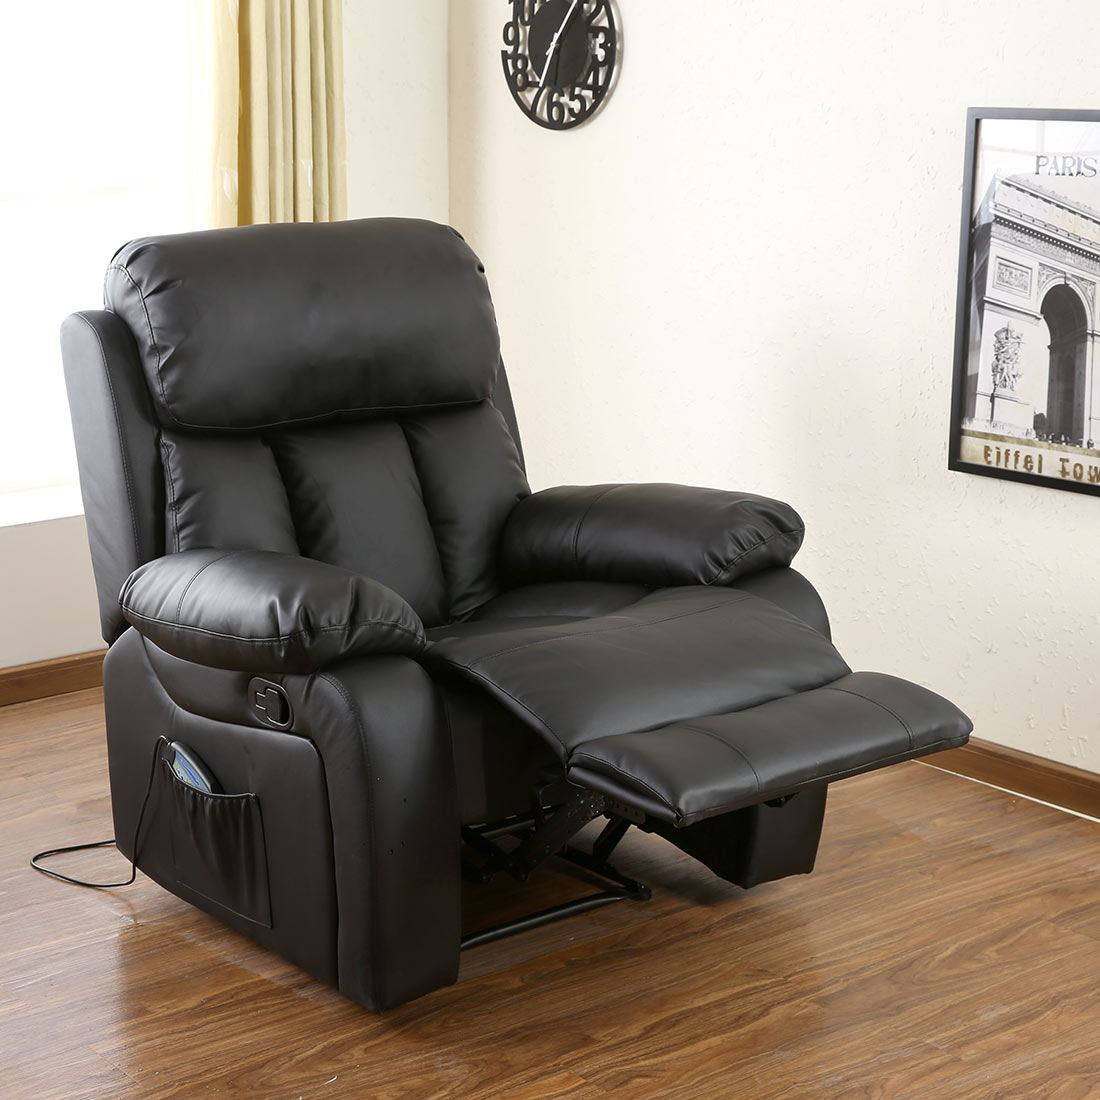 Chester Heated Leather Massage Recliner Chair Sofa Lounge With Regard To Sofa Lounge Chairs (View 3 of 15)